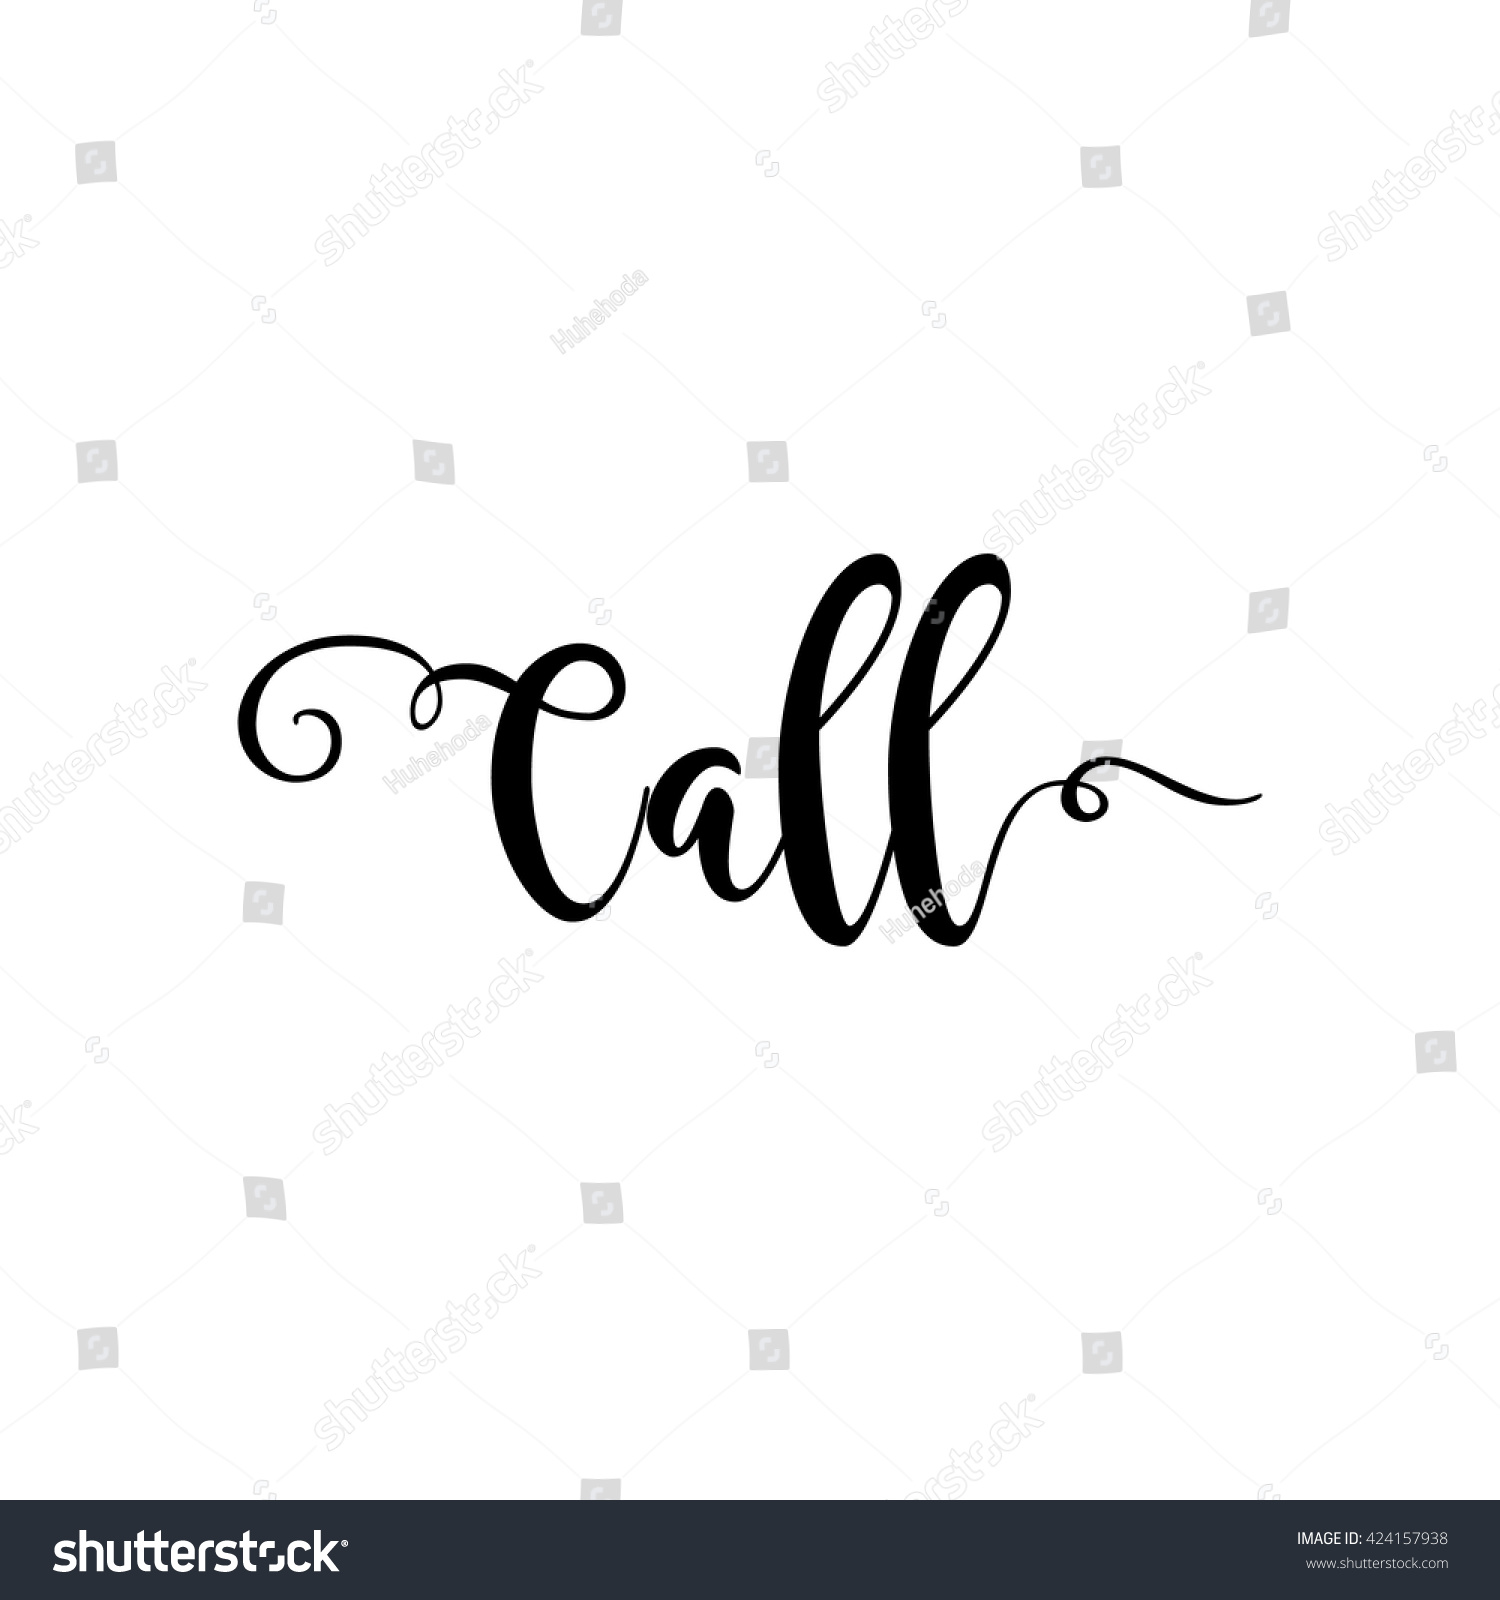 Call Verb English Beautiful Greeting Card With Calligraphy Black